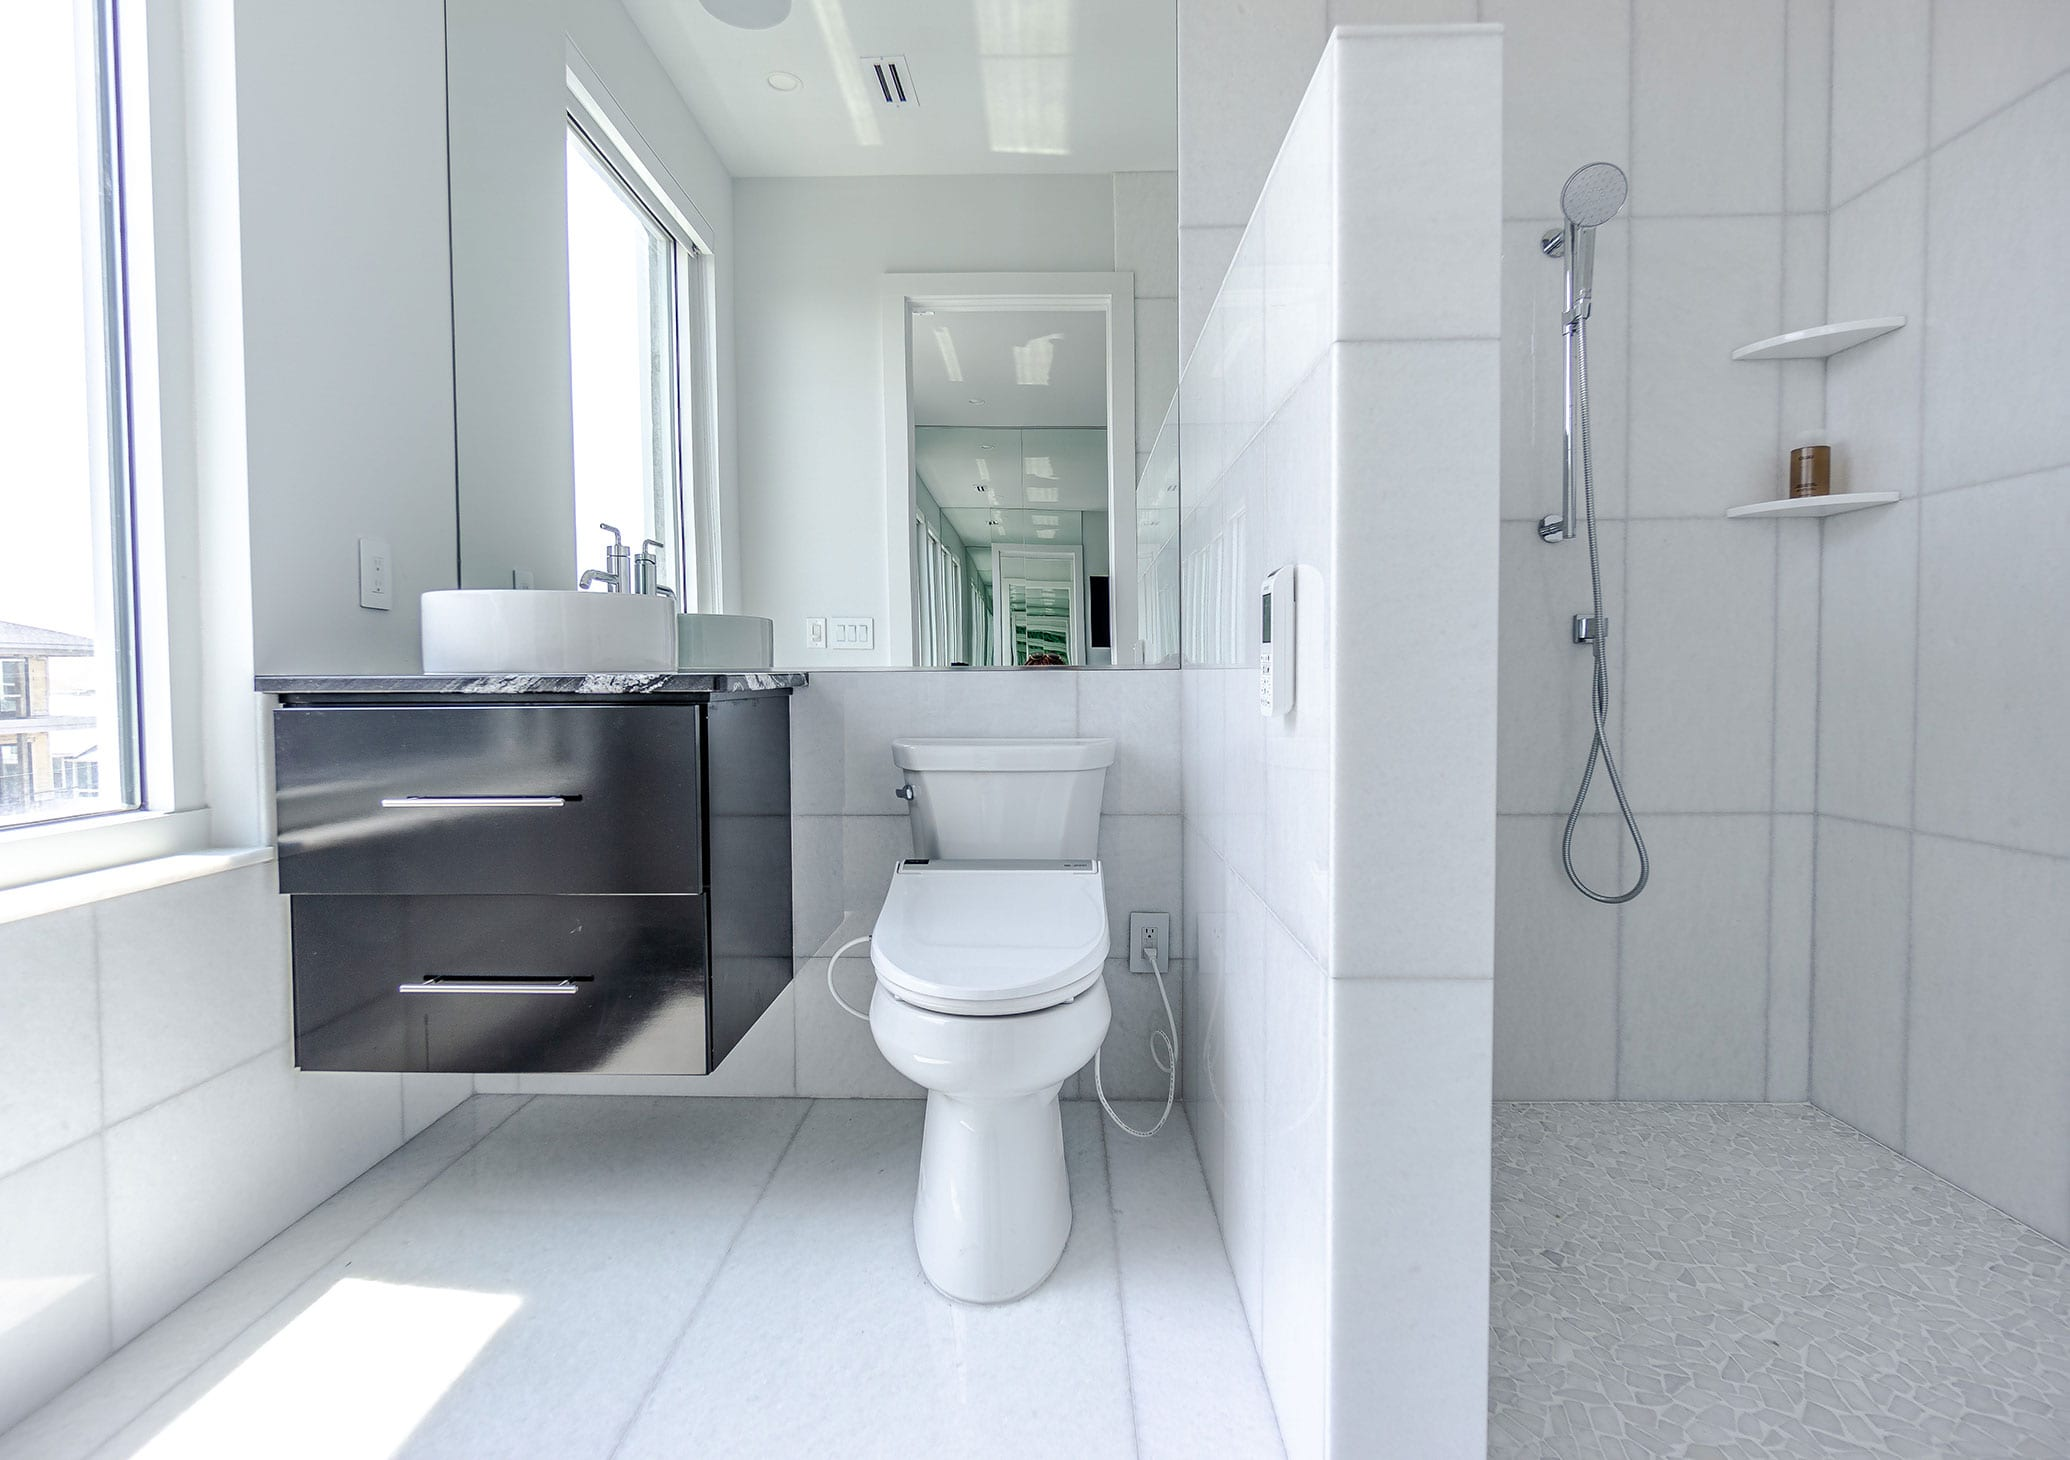 Stoneline-Group-Diamond-White-Marble-Florida-Marble-Collection-Marble-Tile-Hotel-room-deluxe-room-Bathroom-Design-1